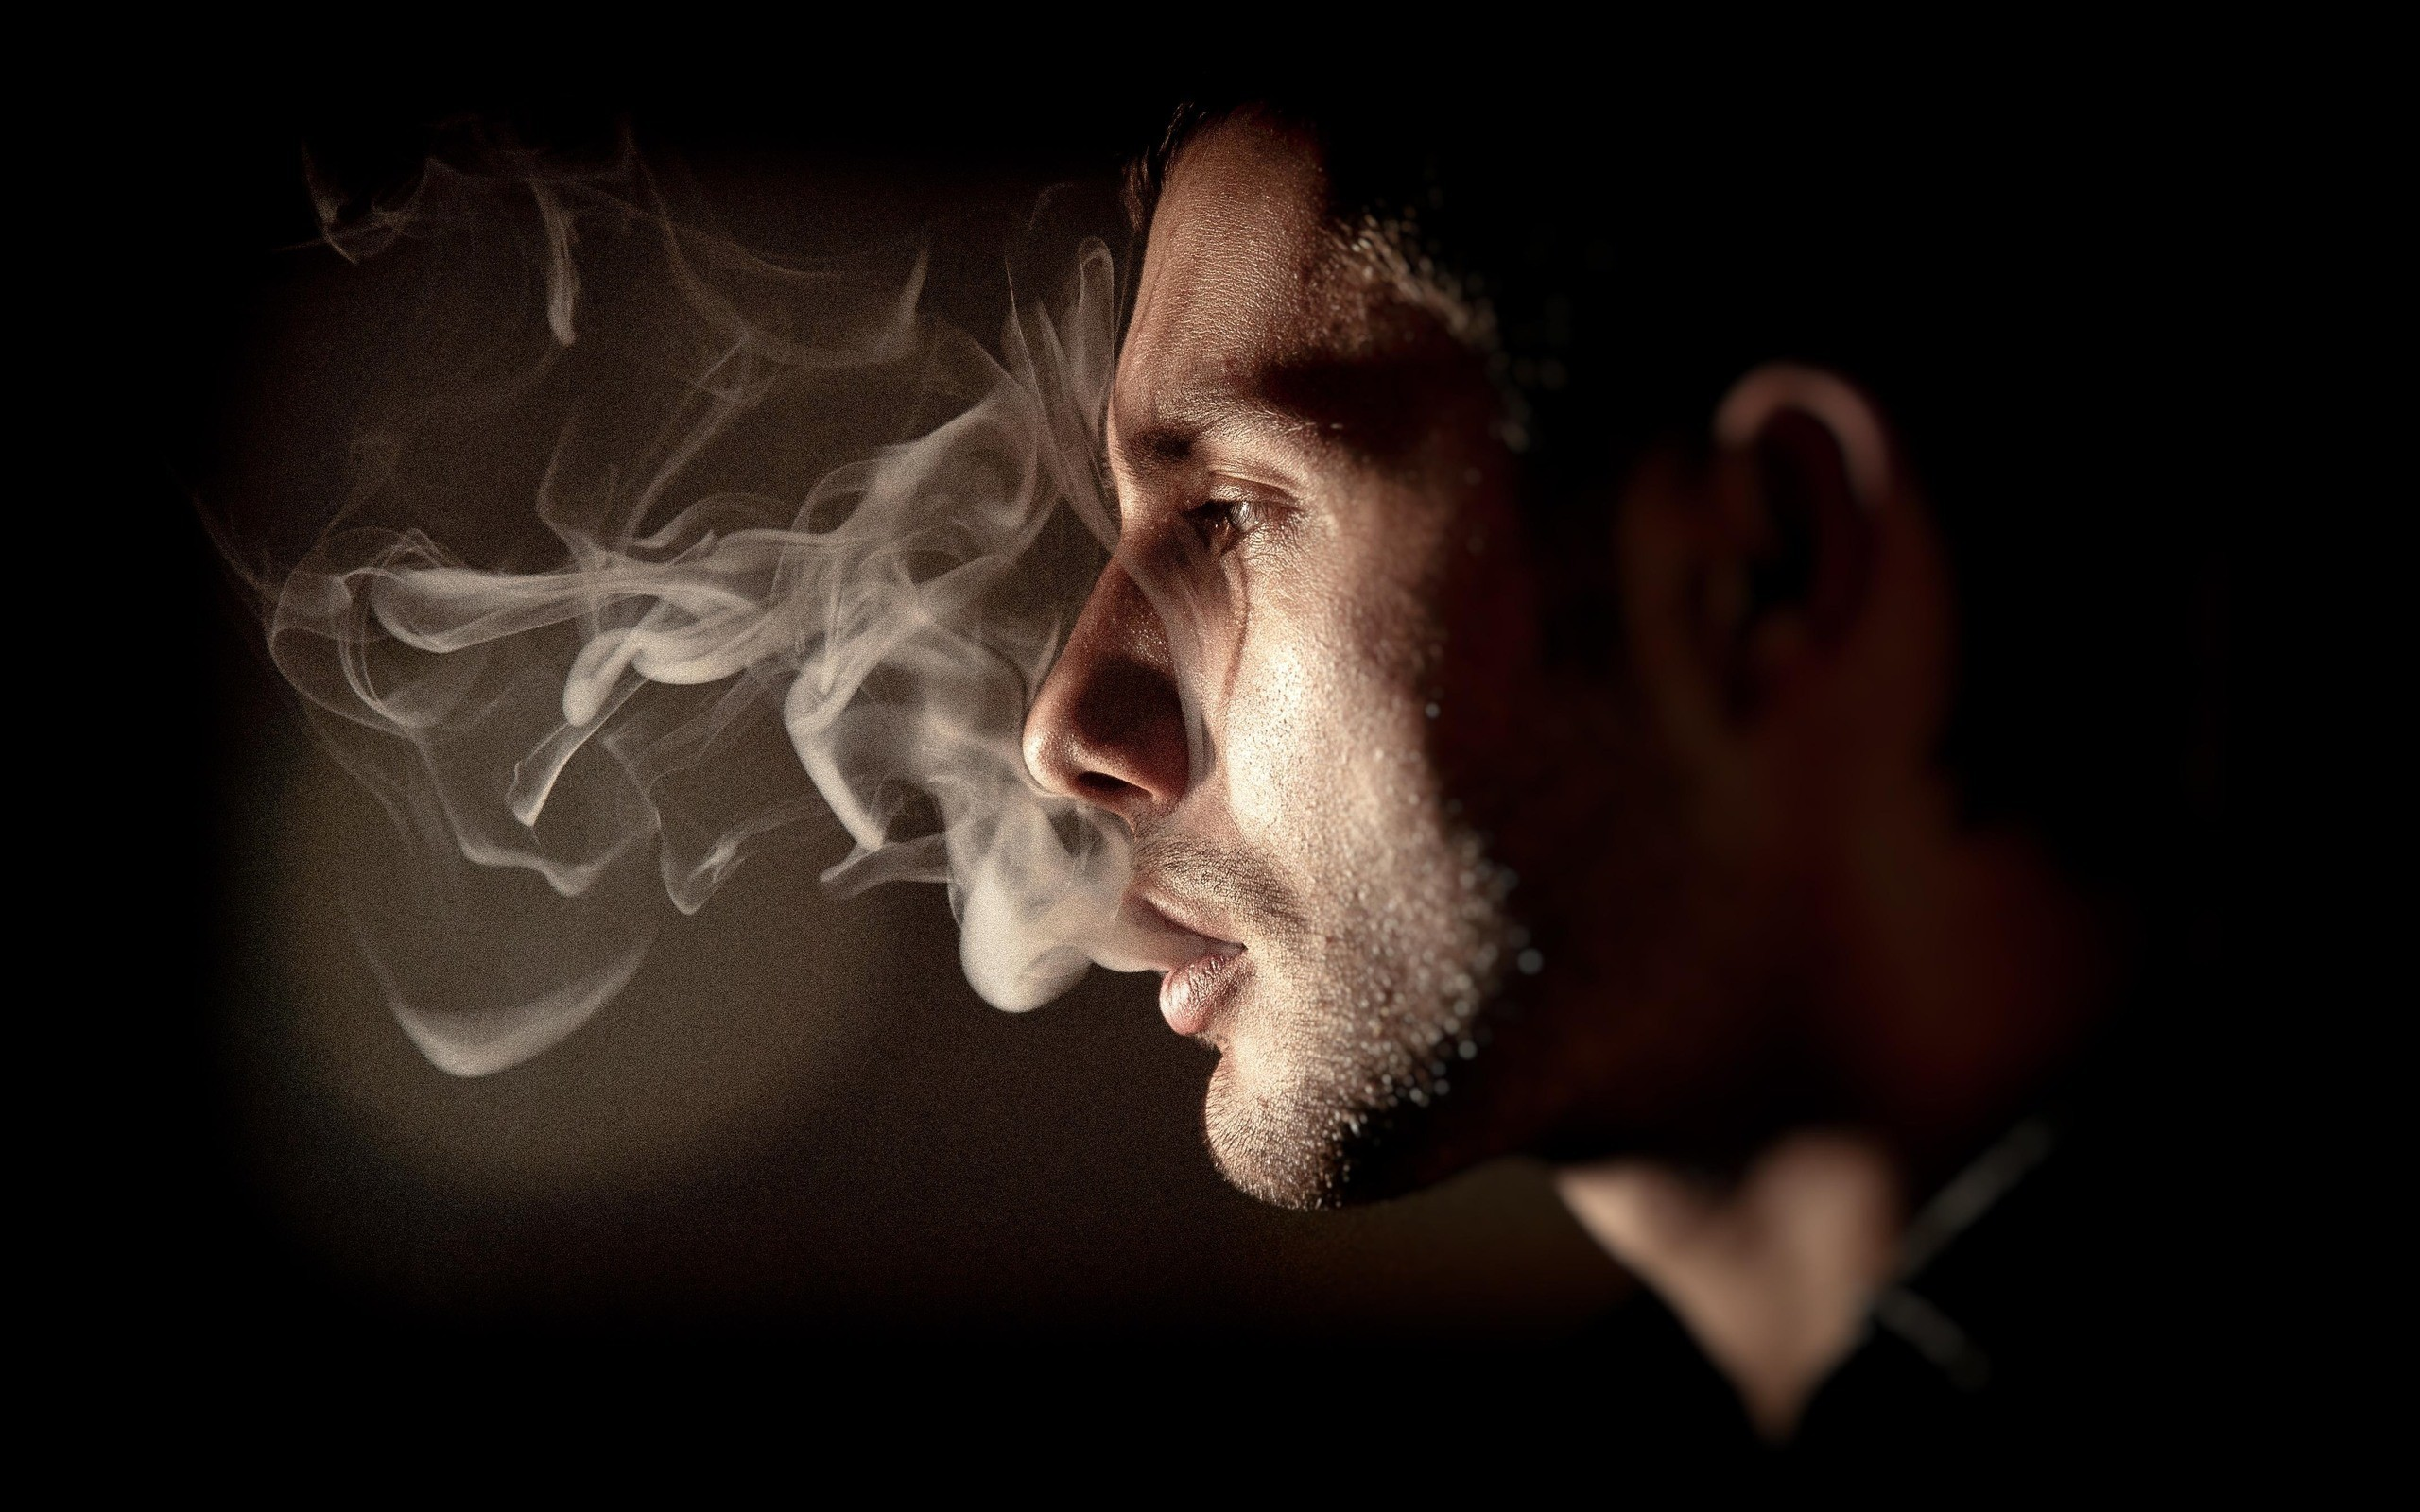 smoking smoke Men Profile HD Wallpaper